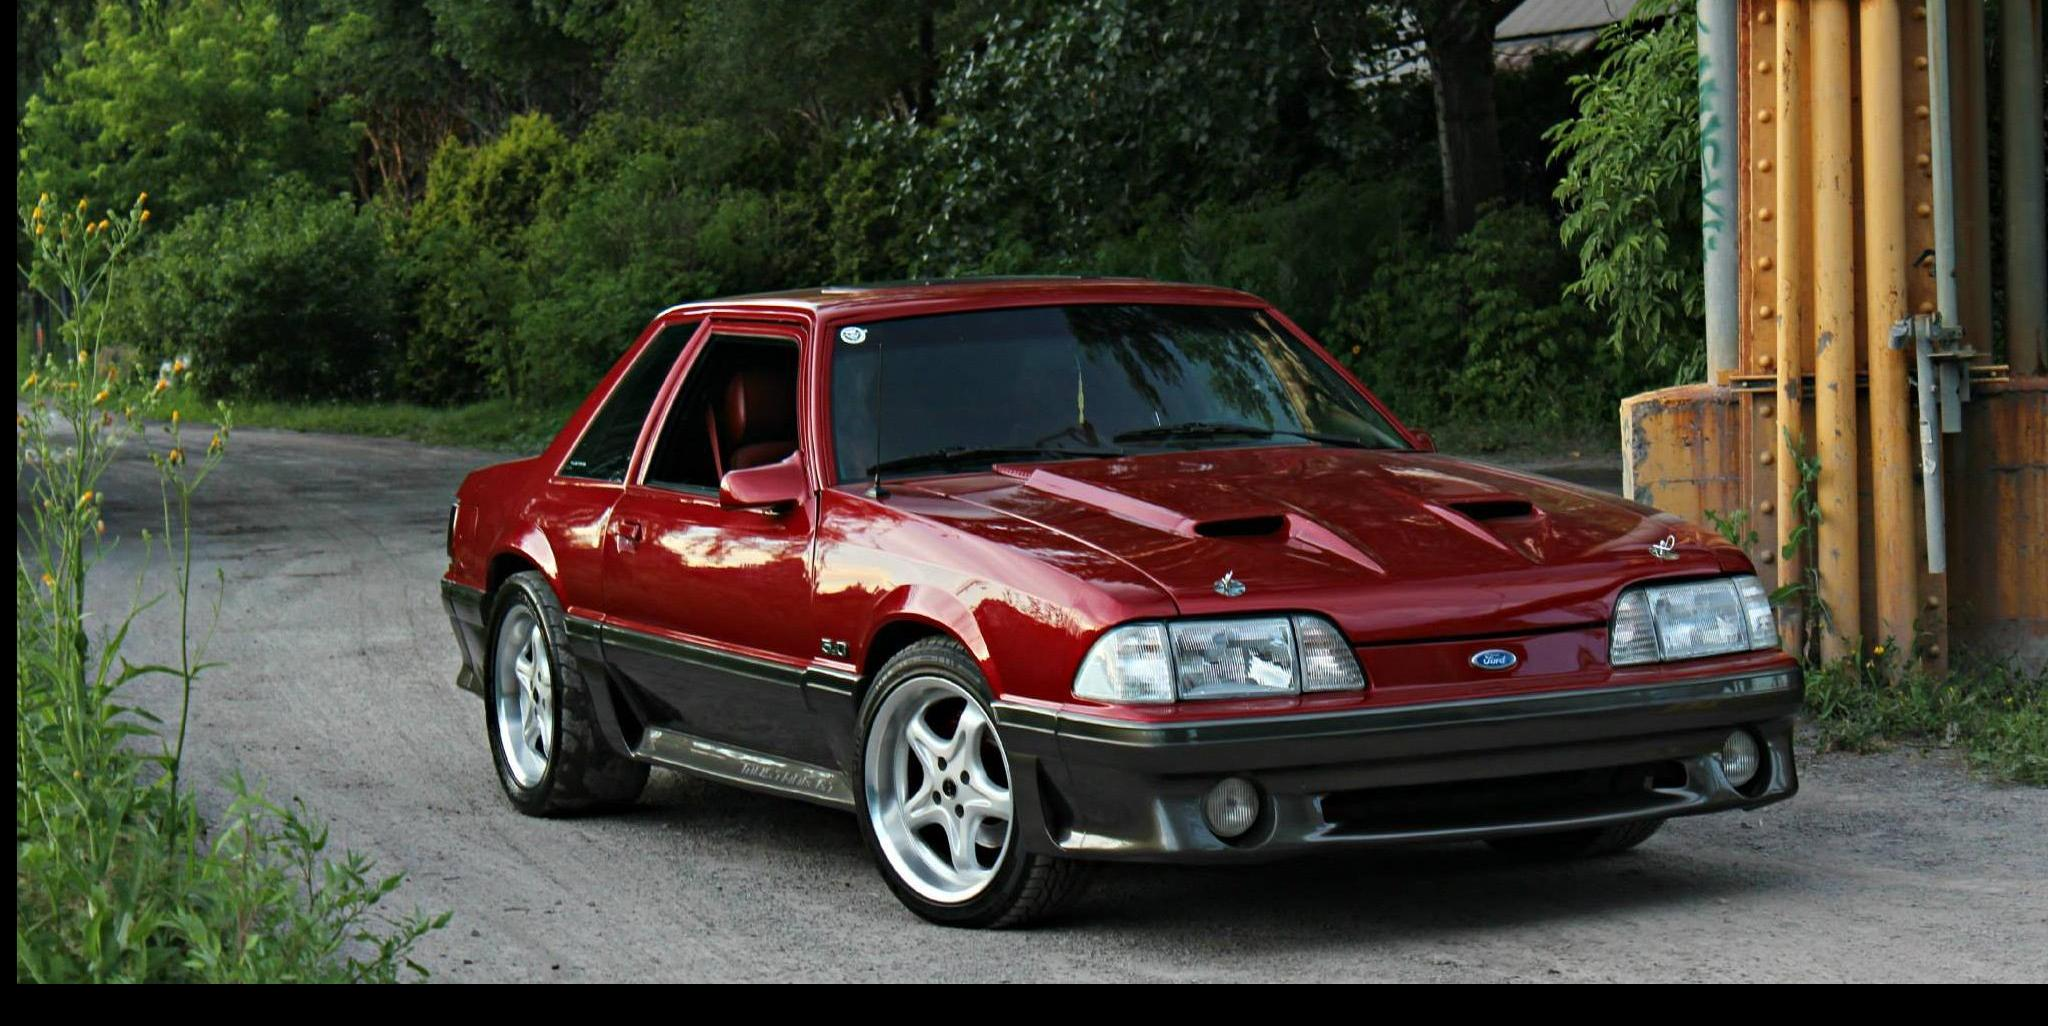 CaNdY ReD StAnG 1988 Ford Mustang